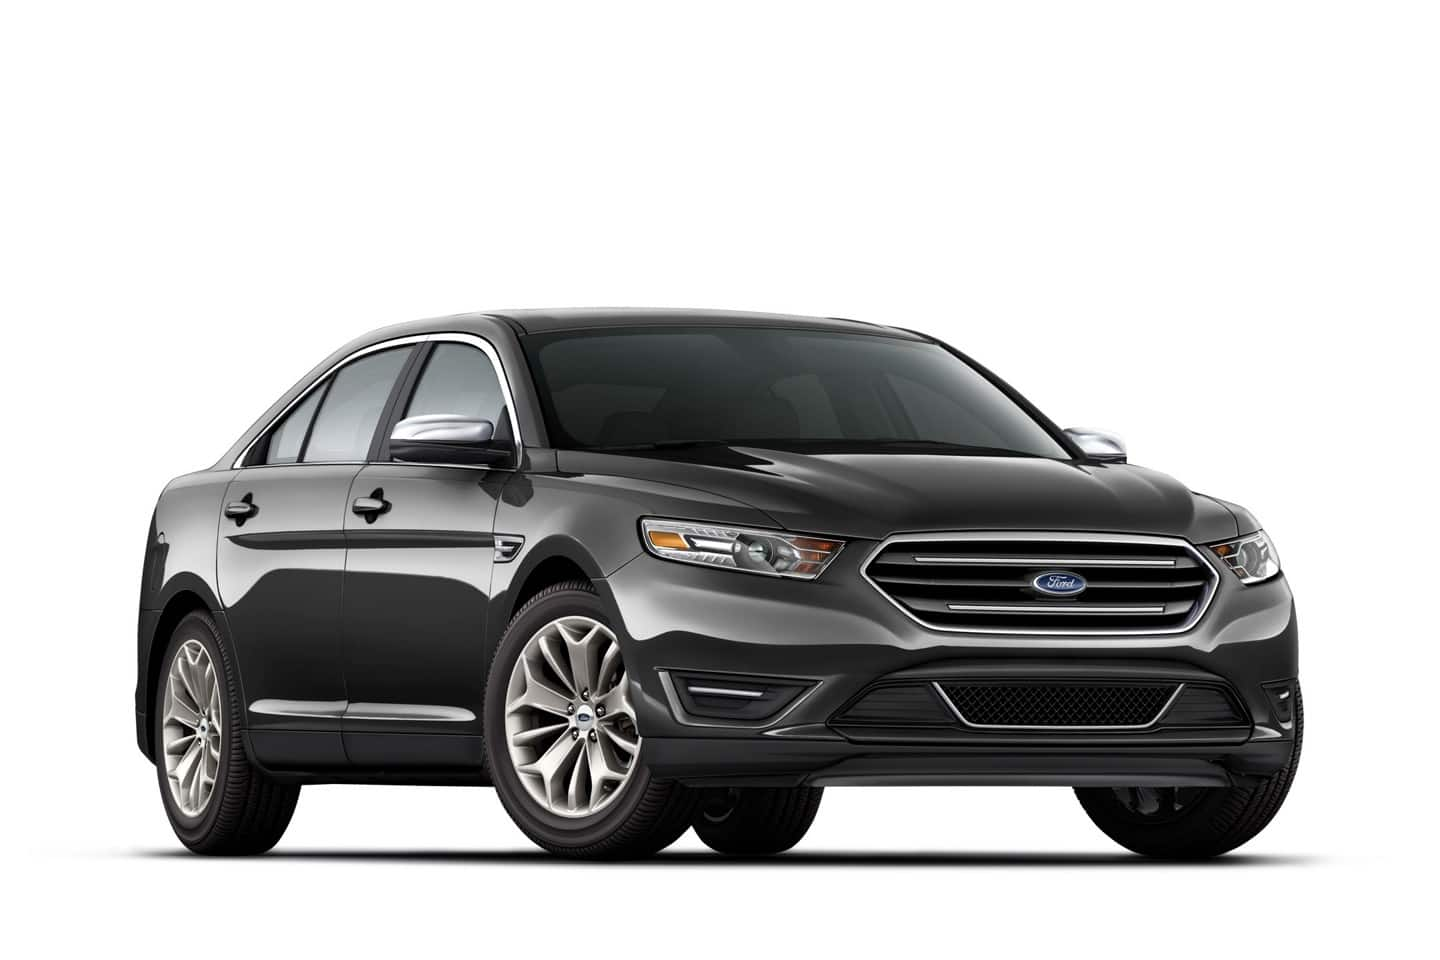 40 All New 2019 Ford Taurus Usa Spy Shoot